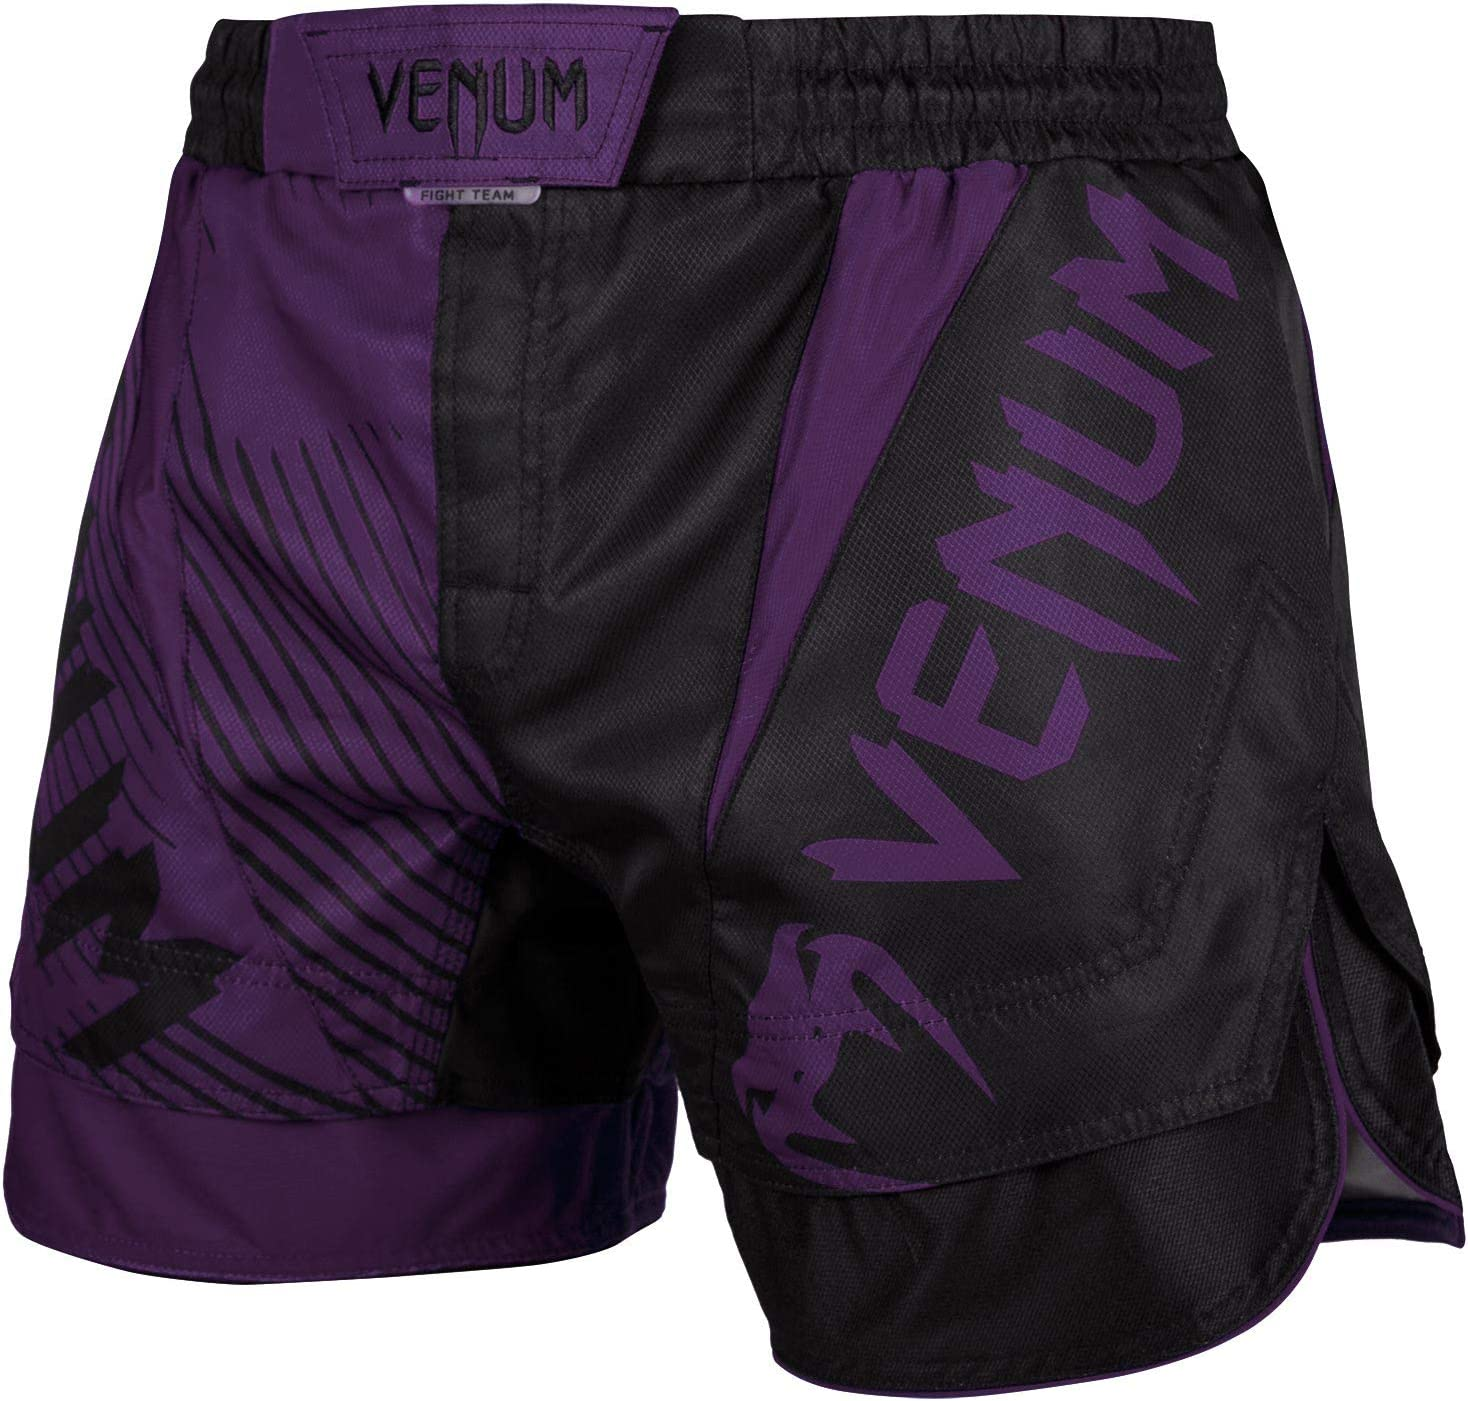 Venum Nogi 2.0 Fightshorts - Black-S, Black, Small